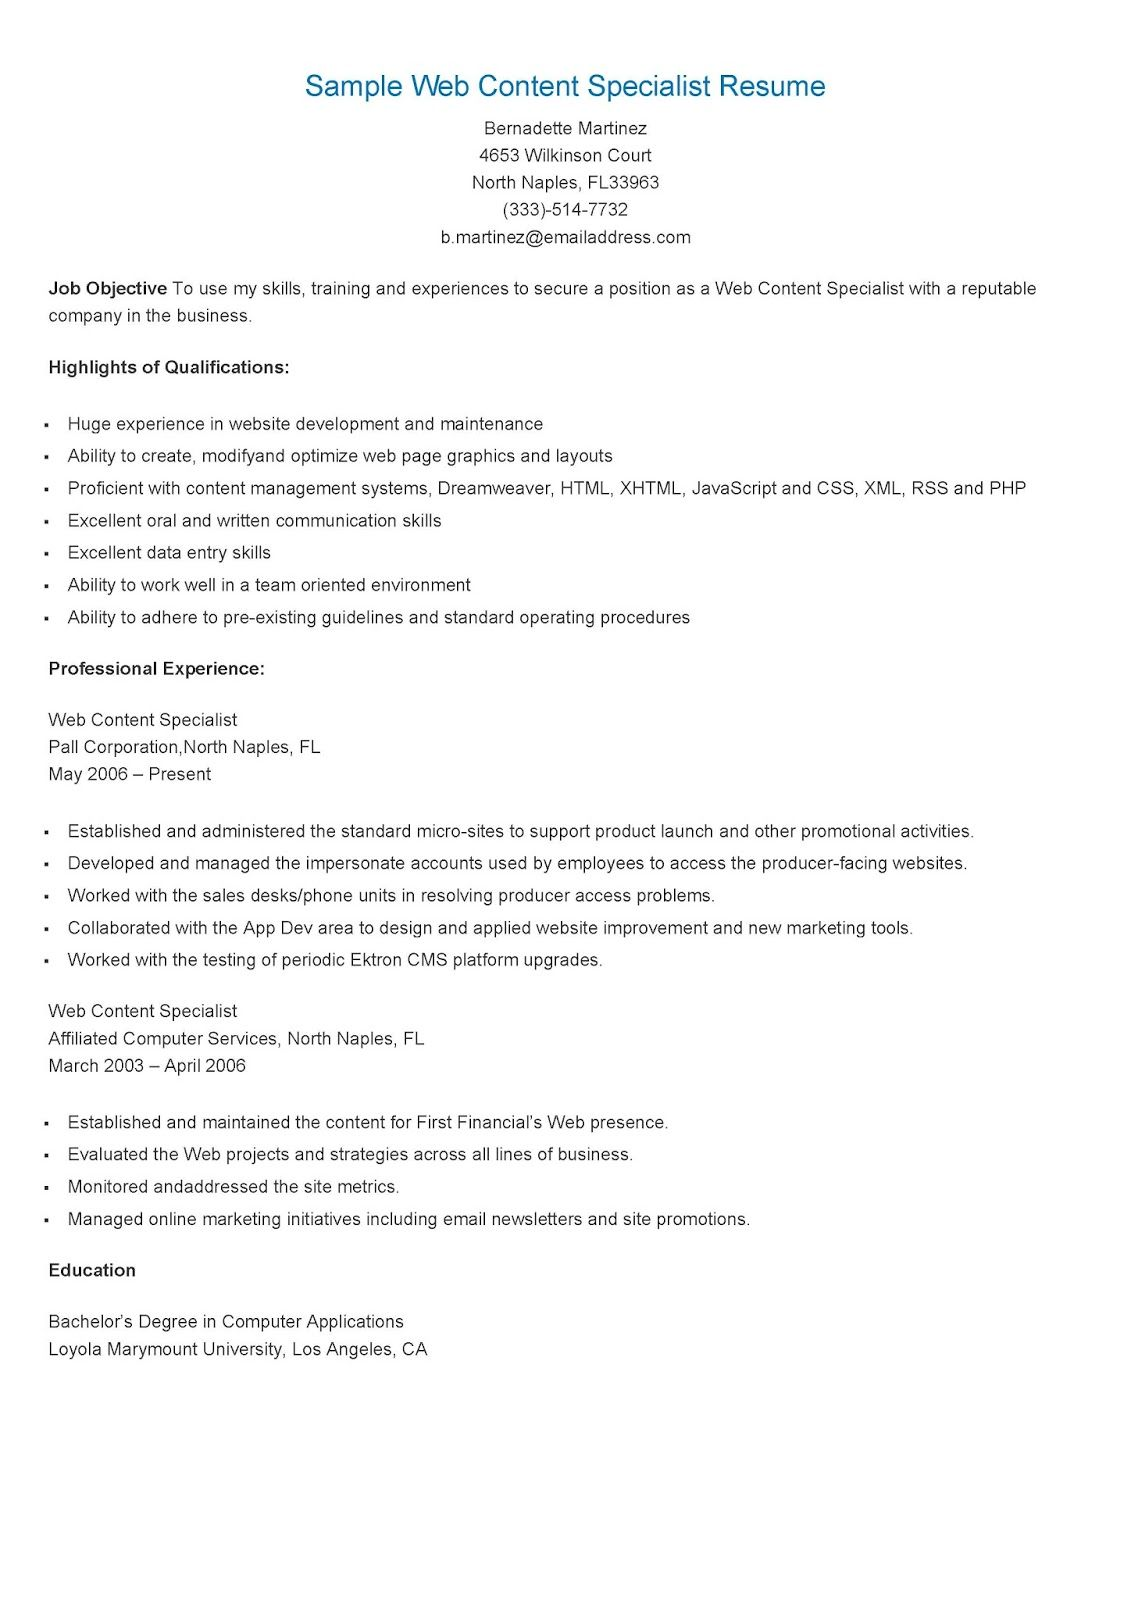 Sample Web Content Specialist Resume Resame Pinterest